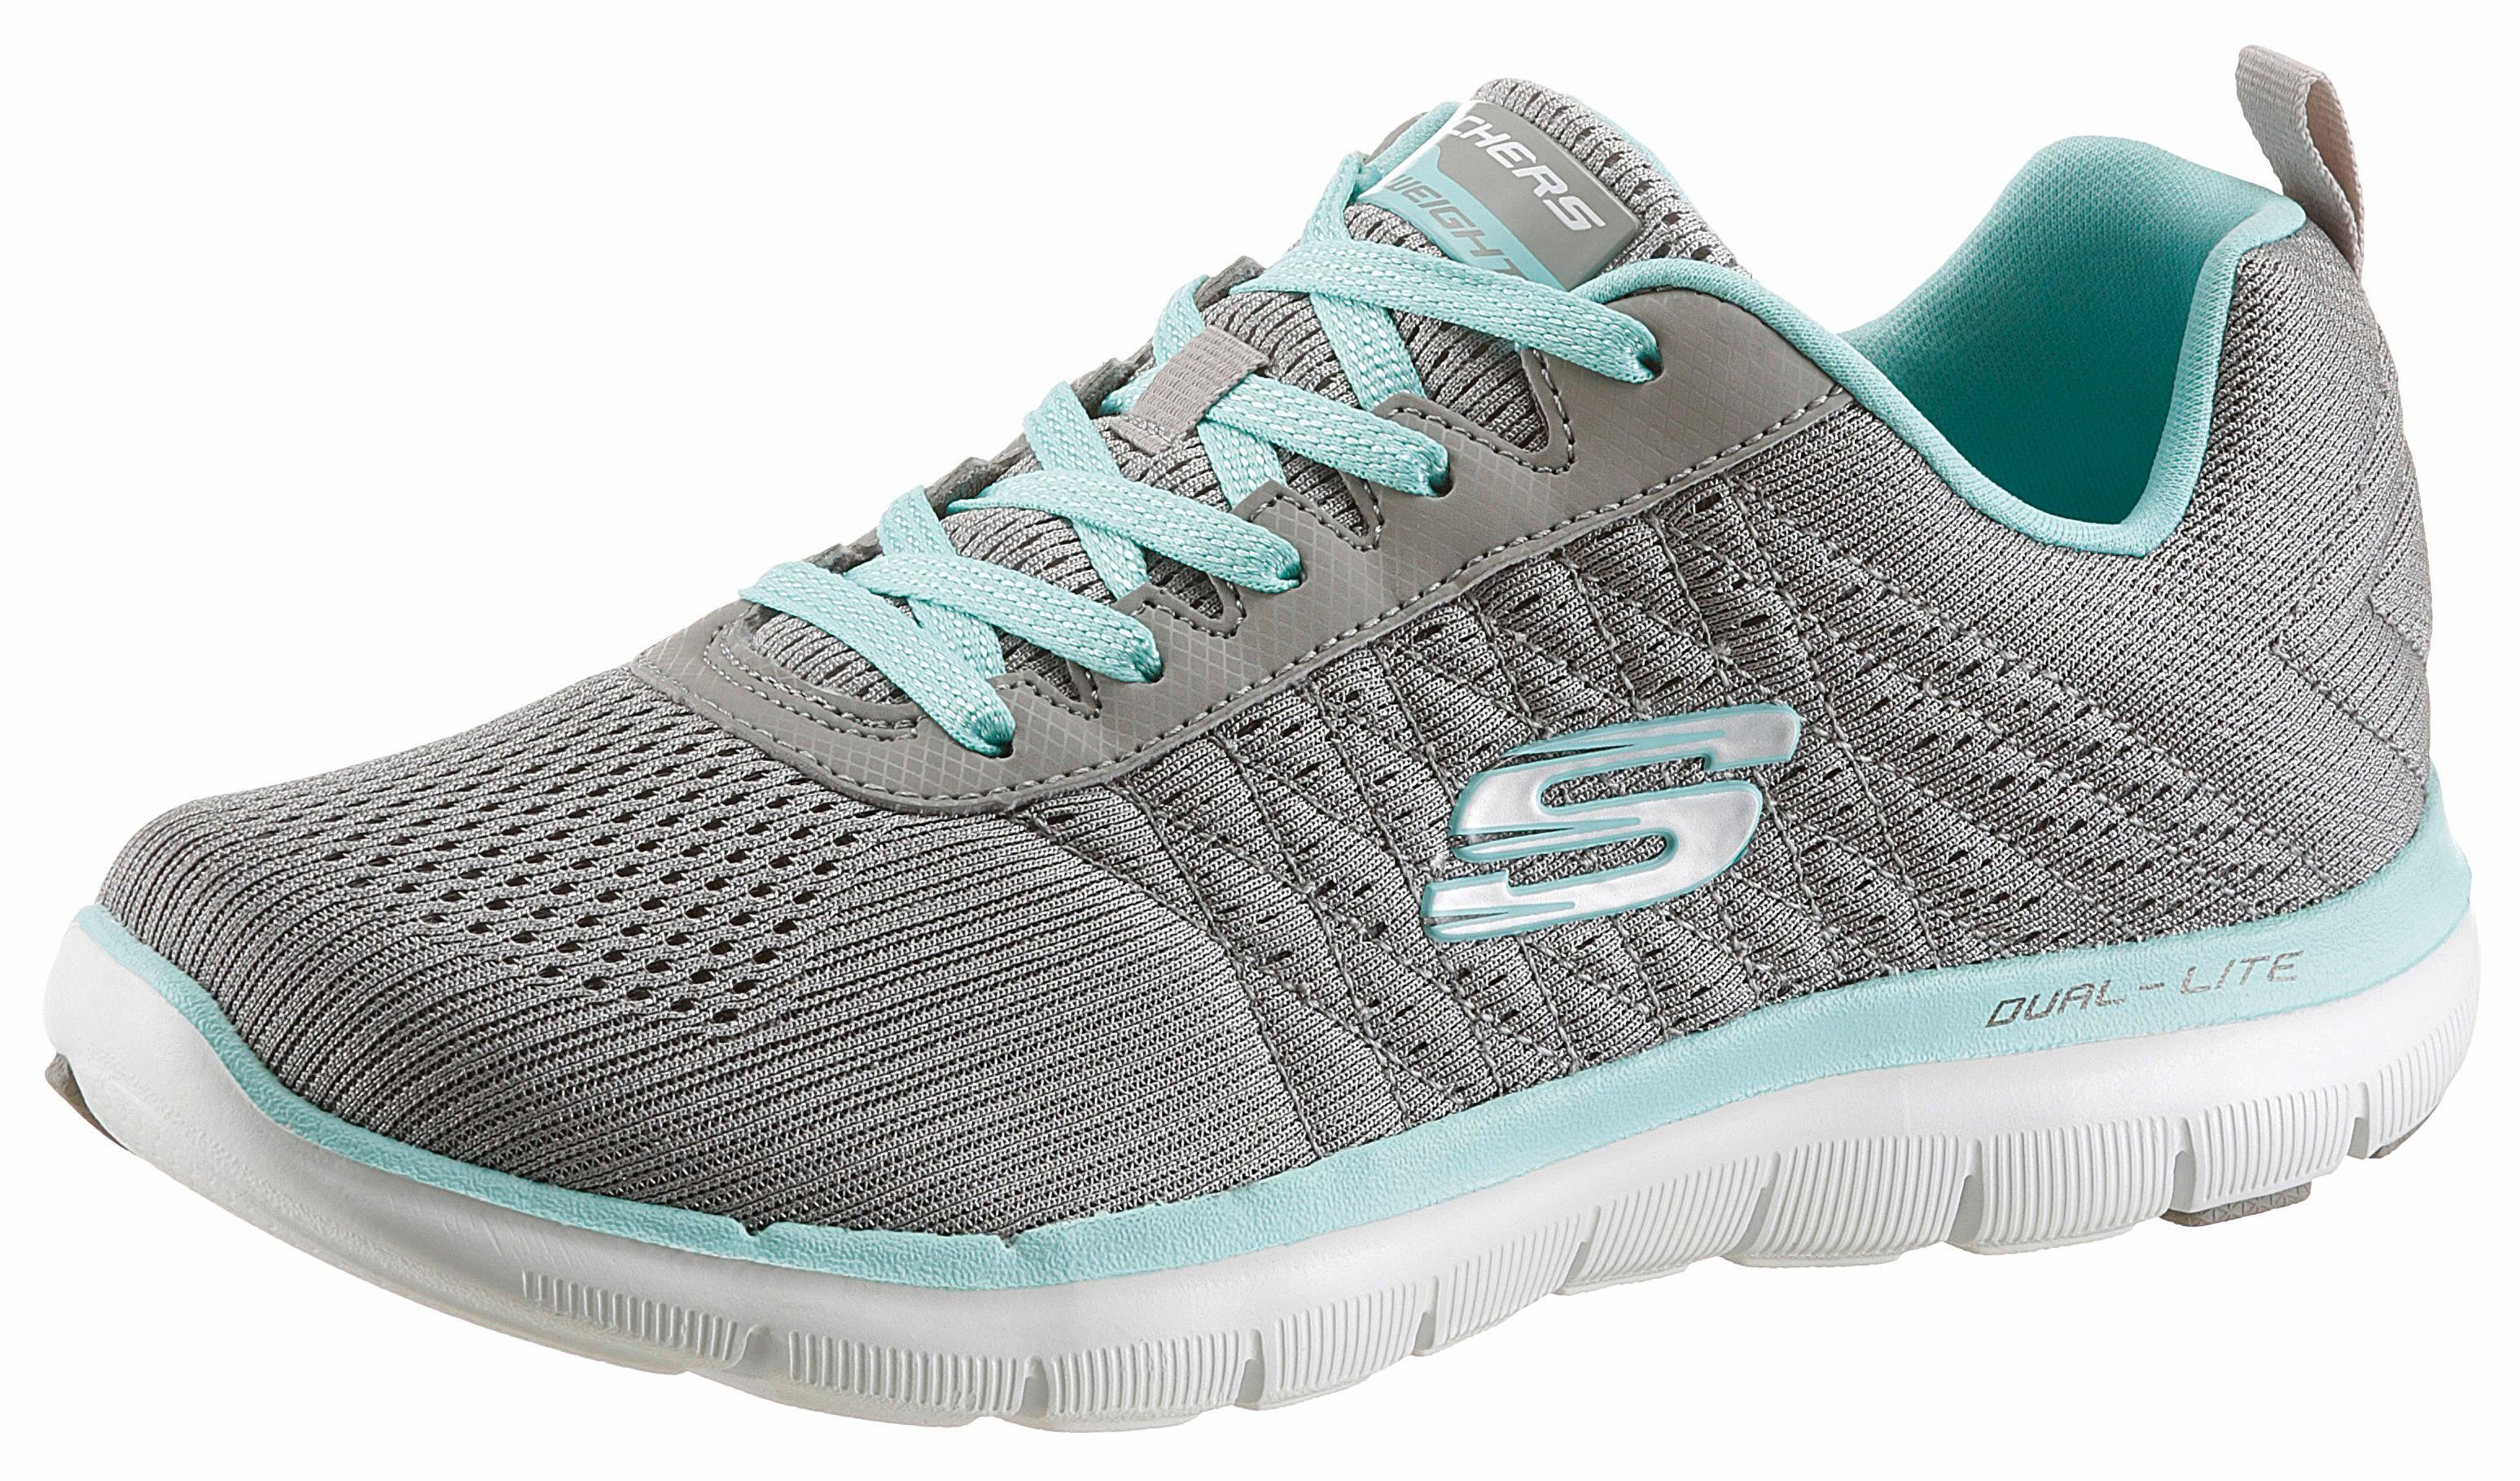 Skechers »Flex Appeal 2.0 Break Free« Sneaker, mit Dämpfung durch Air Cooled Memory Foam, schwarz, 35 35